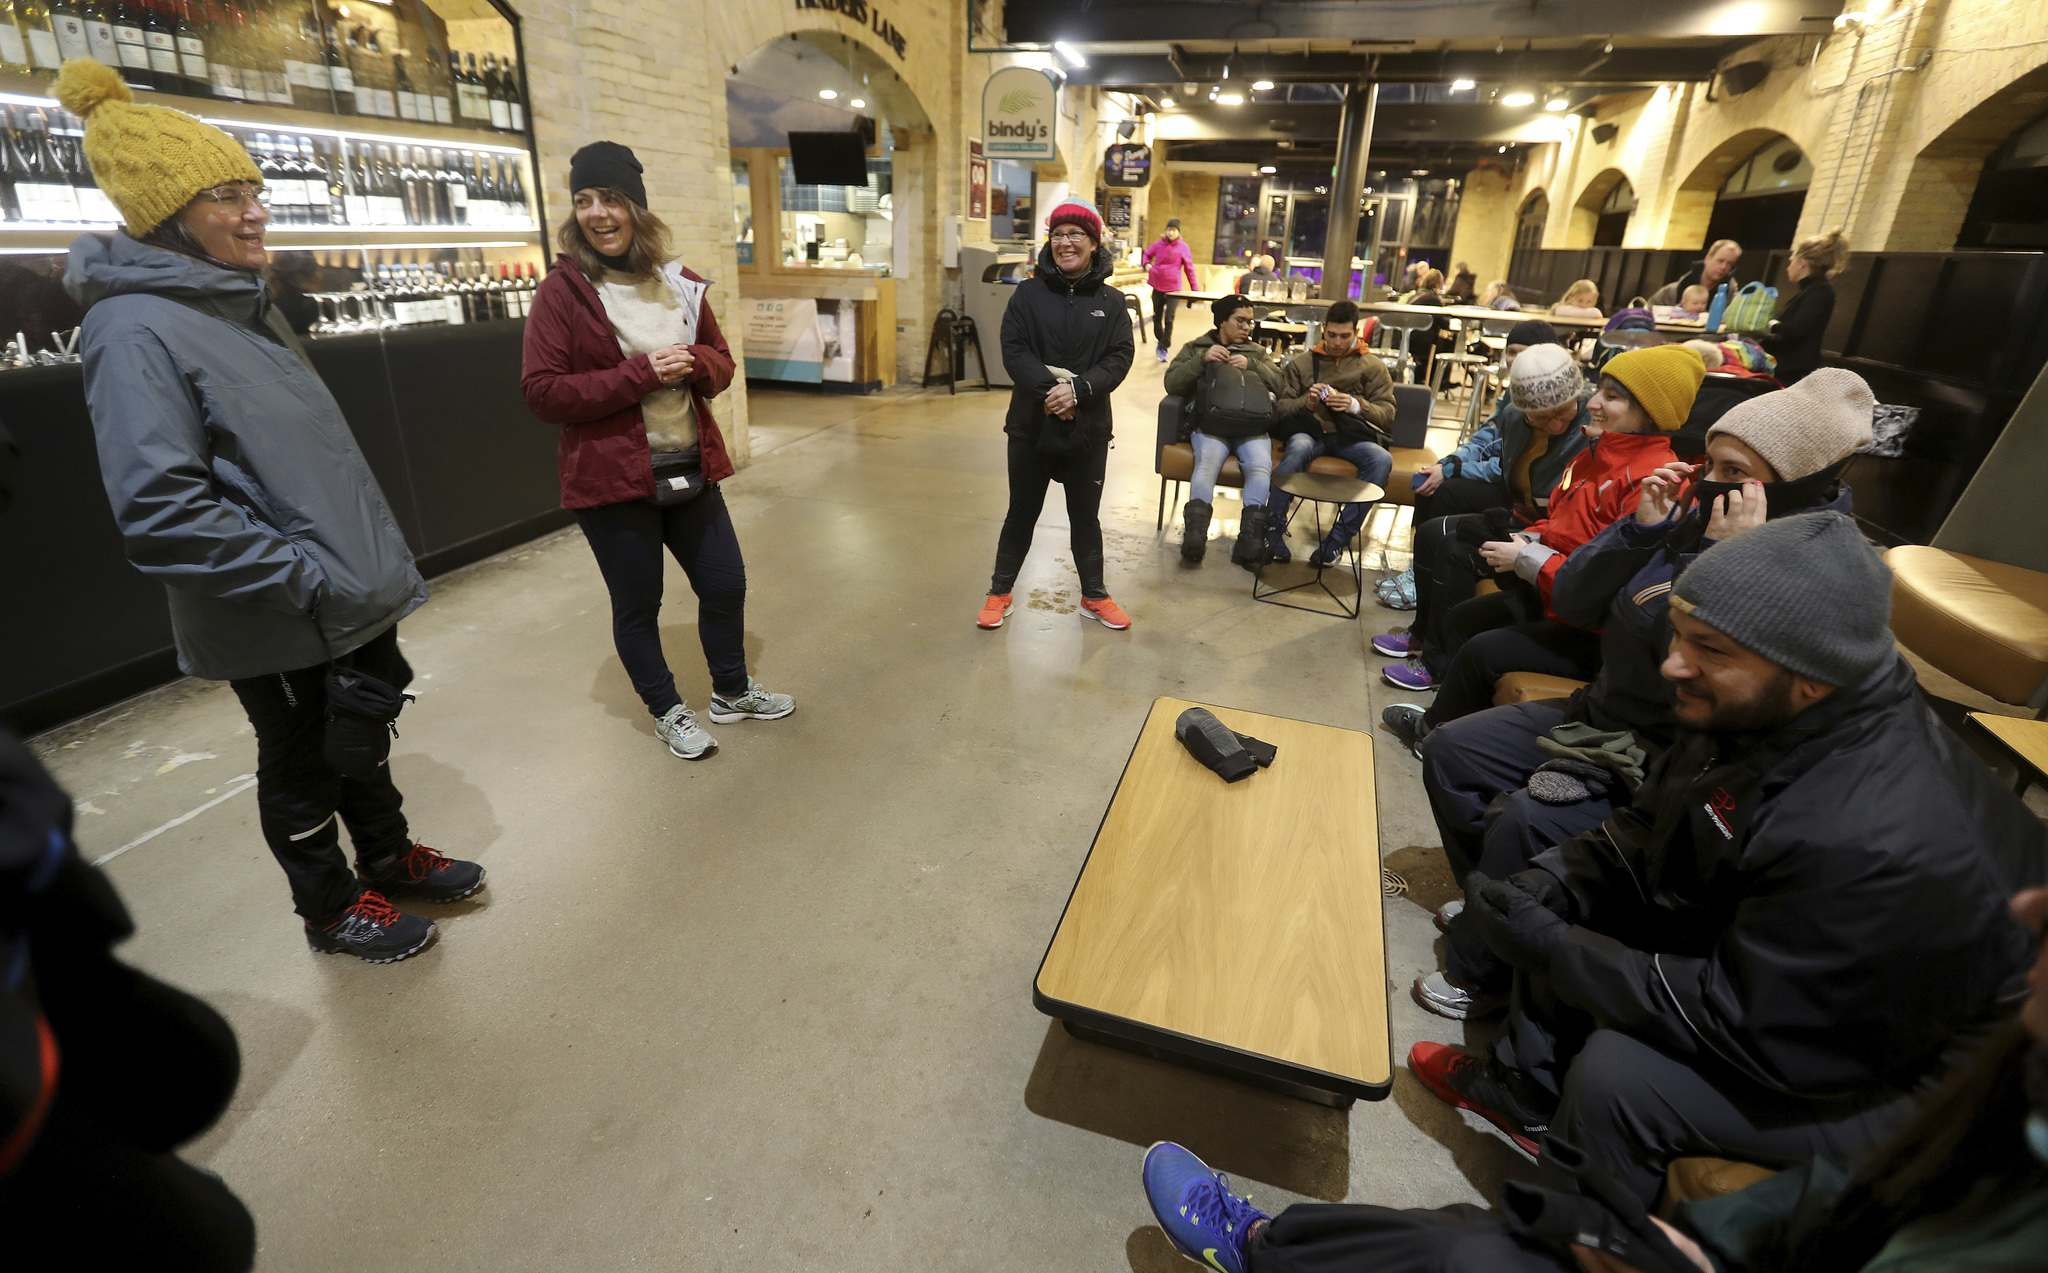 Somers and the members of a run club prep to brave the ourdoor elements. (Trevor Hagan / Winnipeg Free Press)